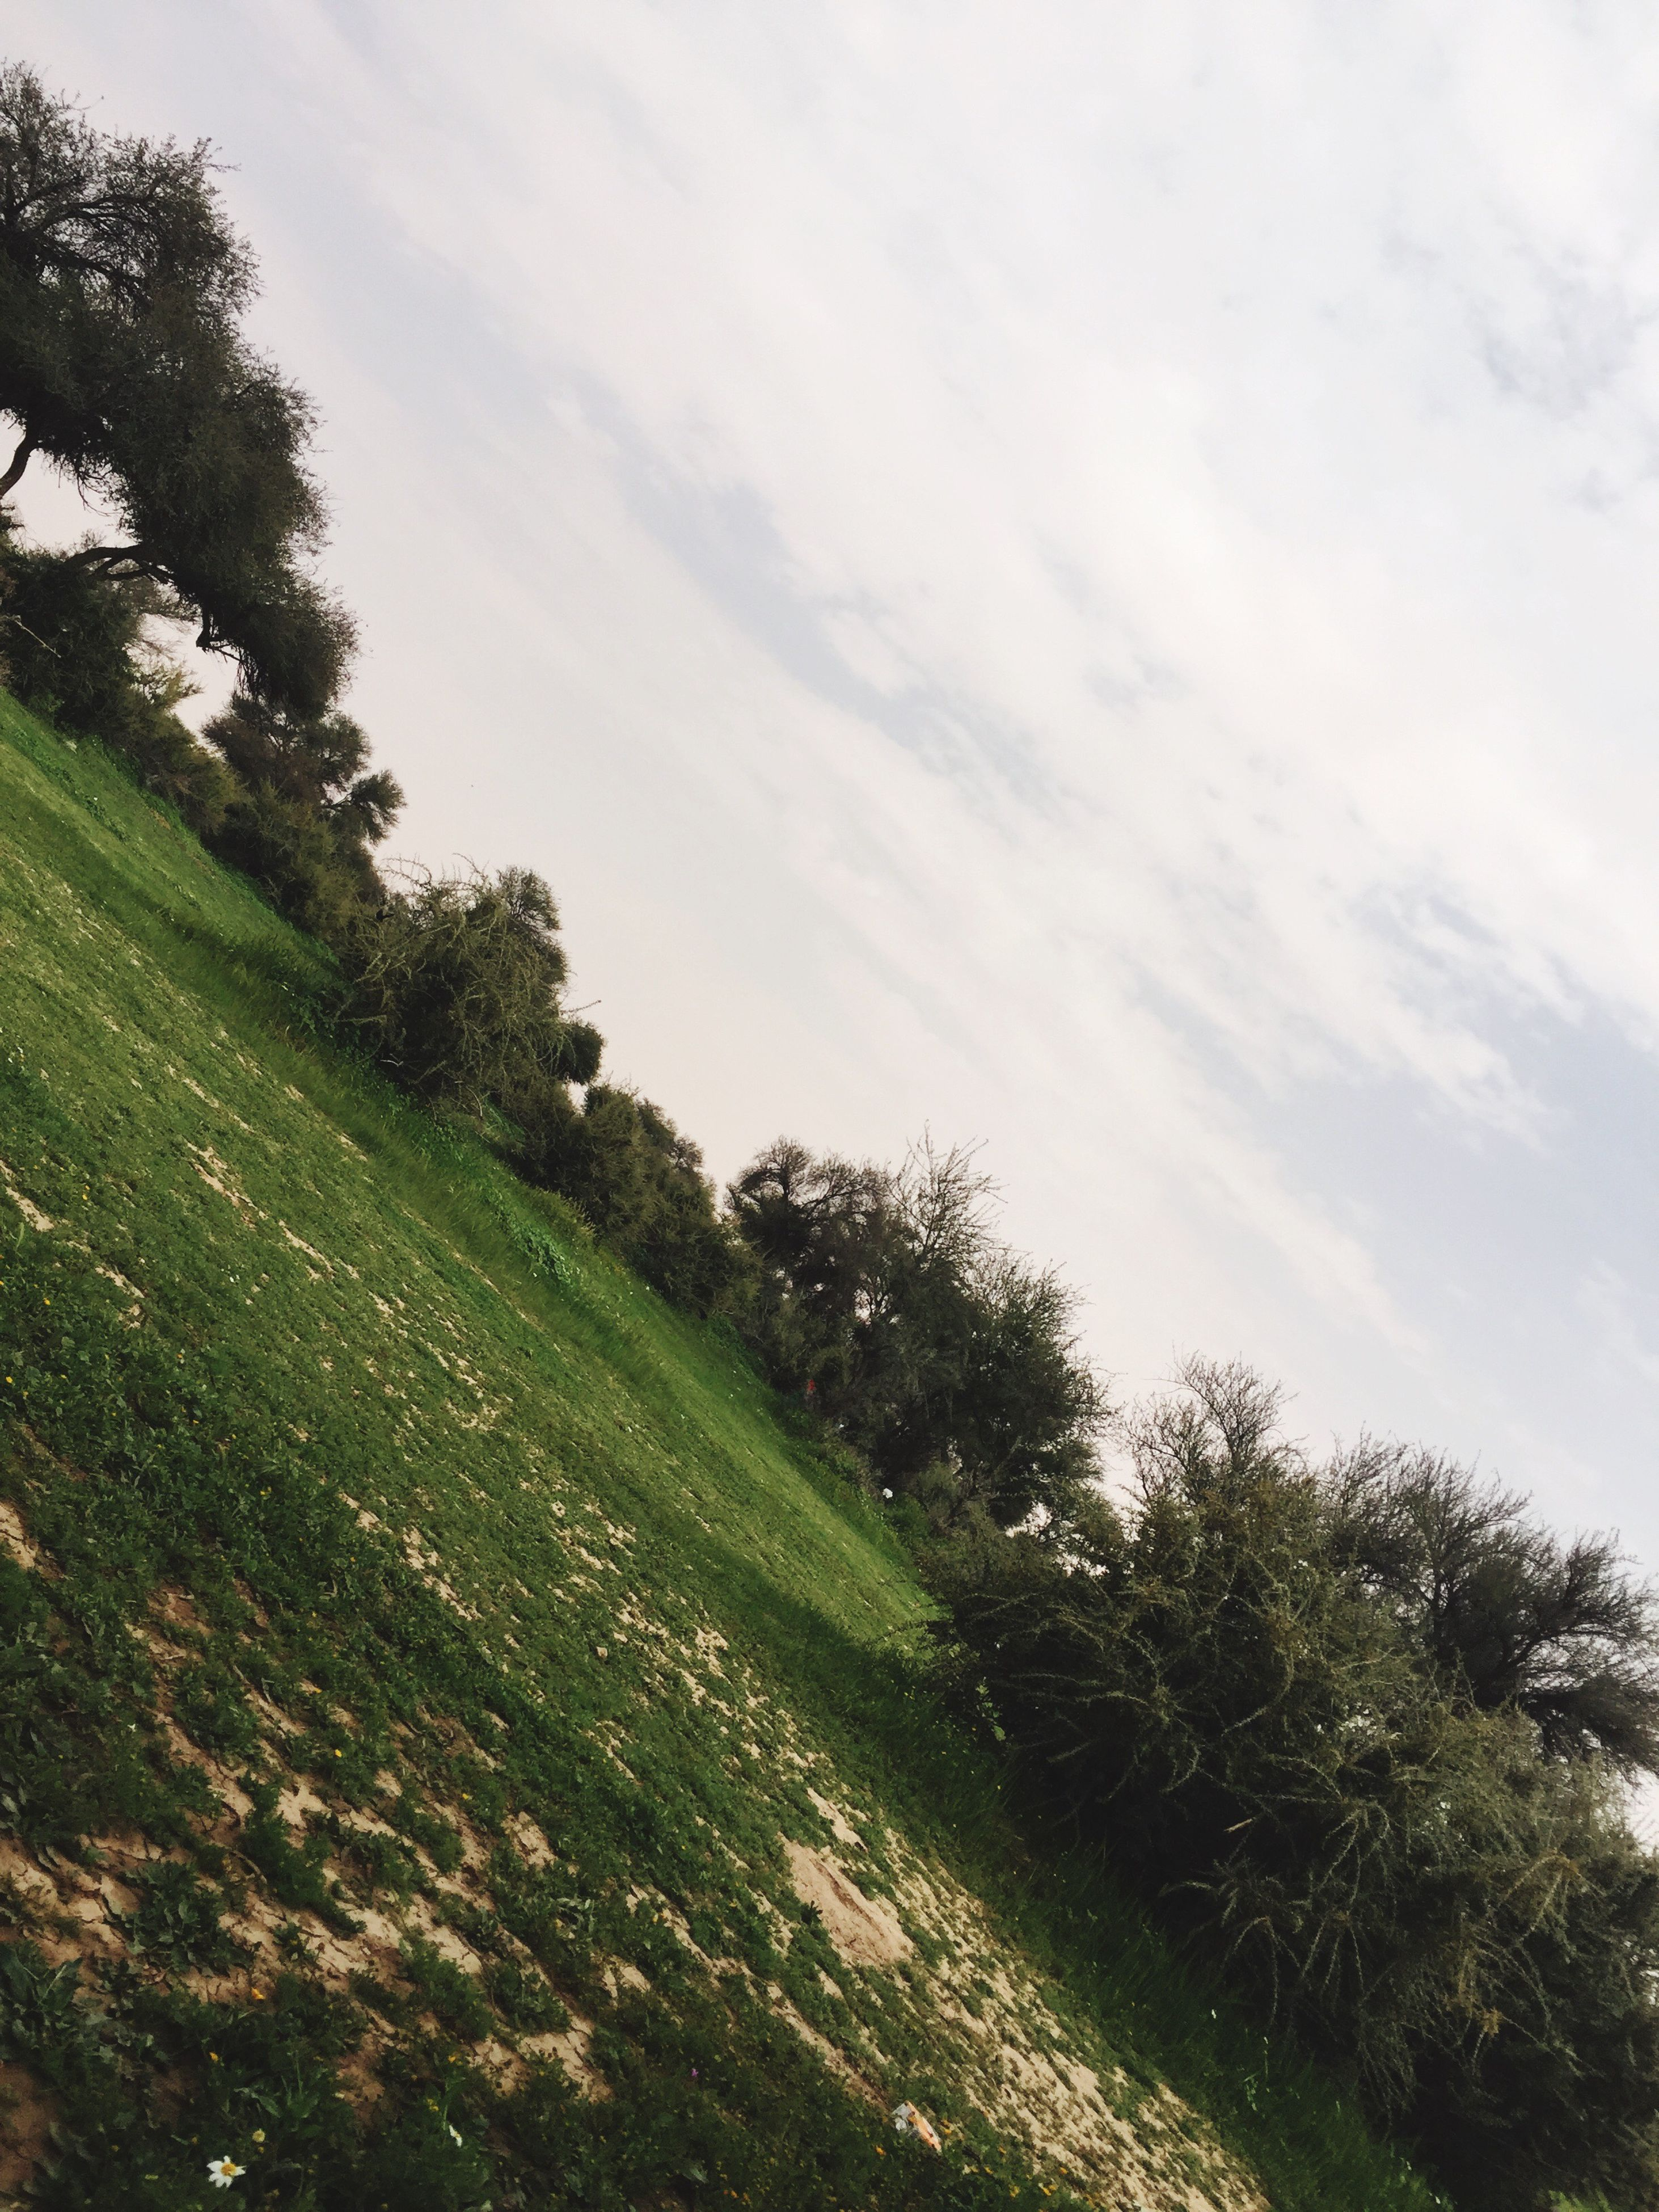 tree, nature, growth, sky, green color, tranquility, tranquil scene, beauty in nature, no people, scenics, landscape, outdoors, grass, low angle view, day, agriculture